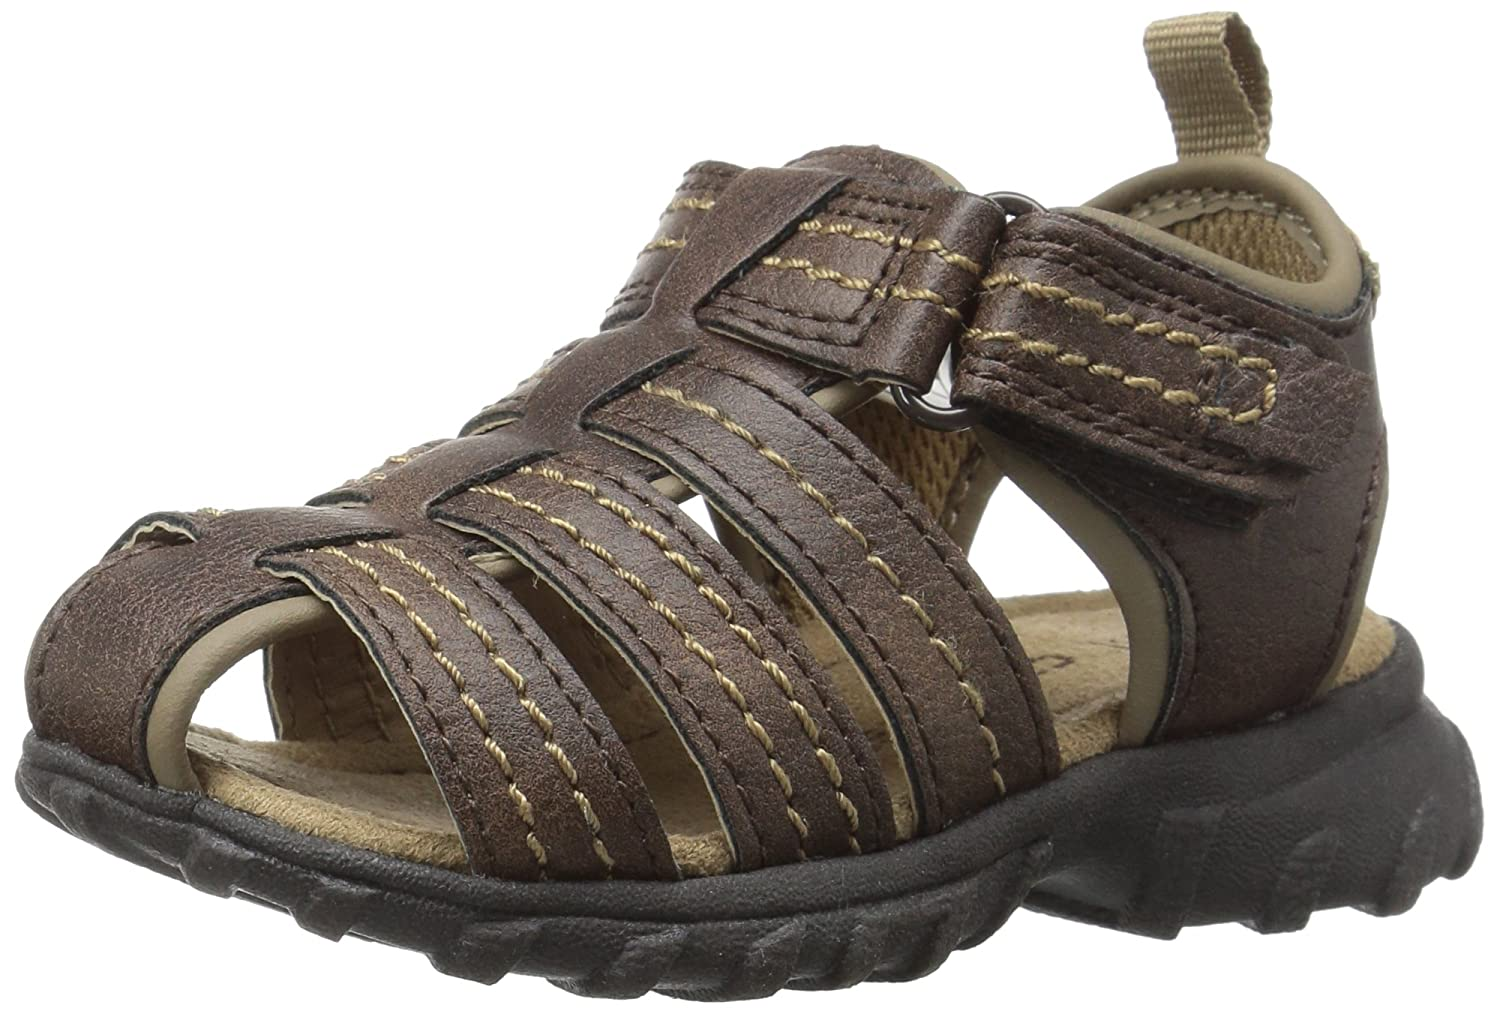 carter's Jupiter Boy's Casual Fisherman Sandal Carter' s JUPITER-C - K